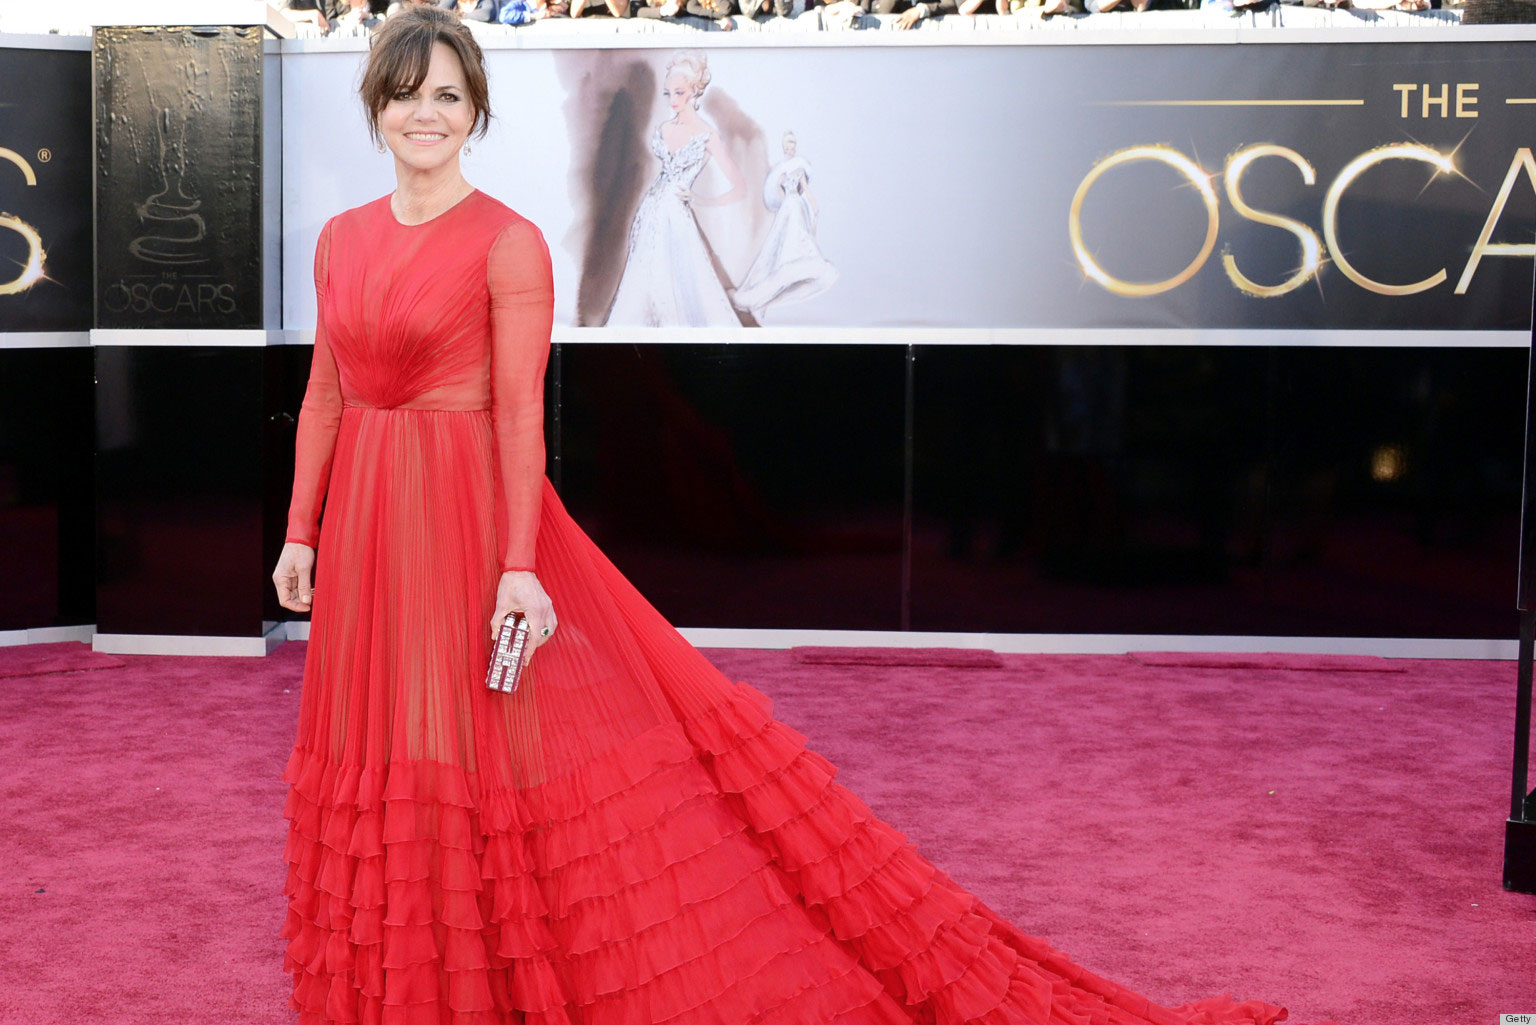 Sally Field at the 2013 85th Academy Awards. Photo: Getty.